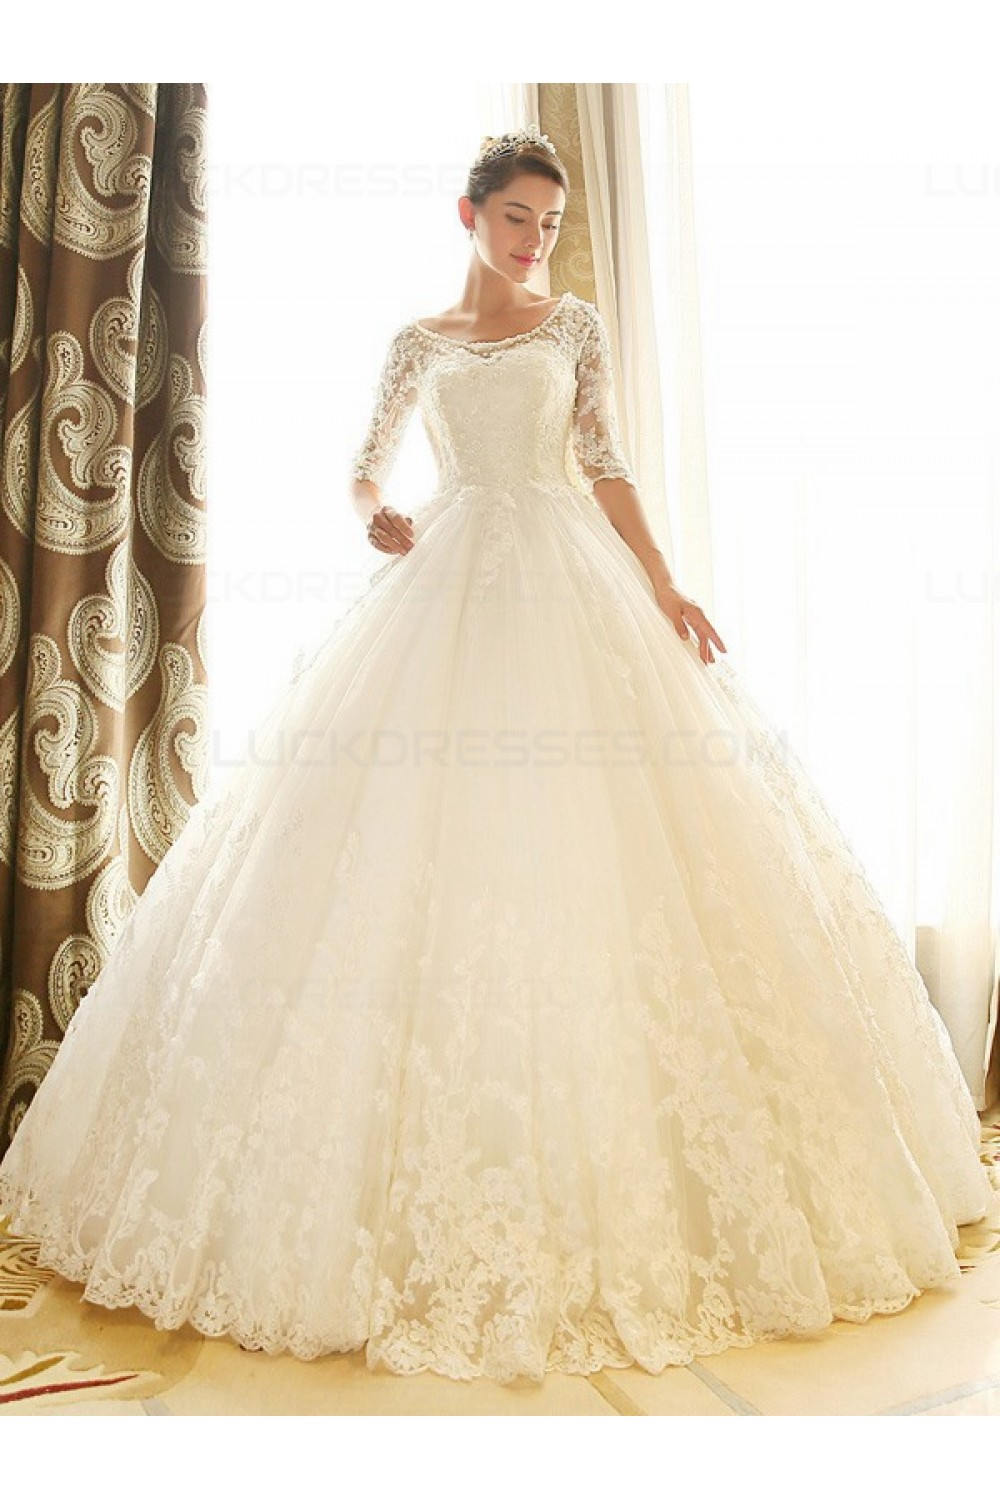 Lace Bridal Ball Gown 3 4 Length Sleeves Wedding Dresses